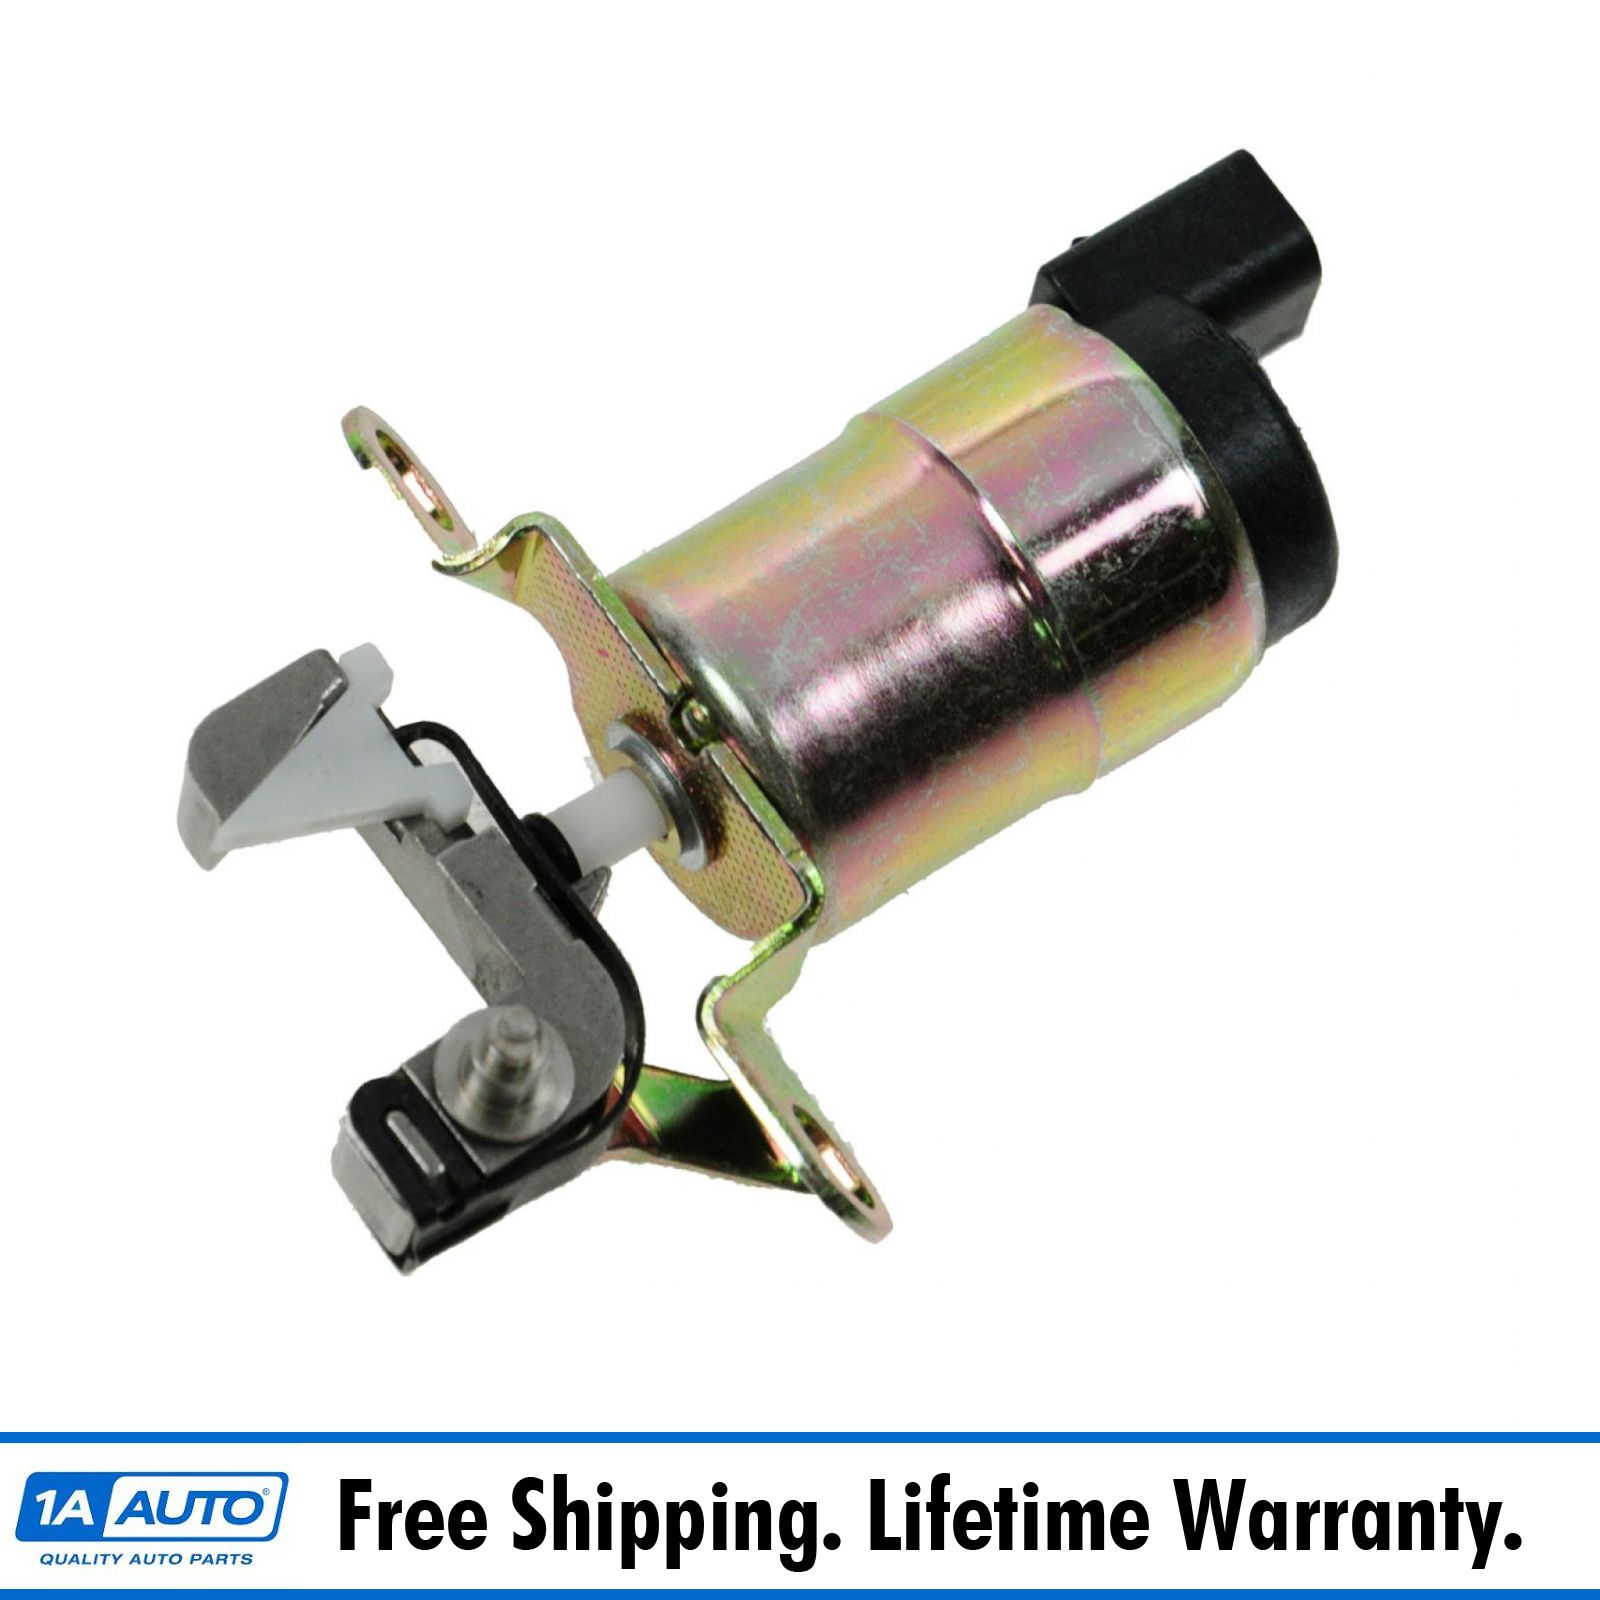 Automatic Car Starter For Manual Transmission Cost